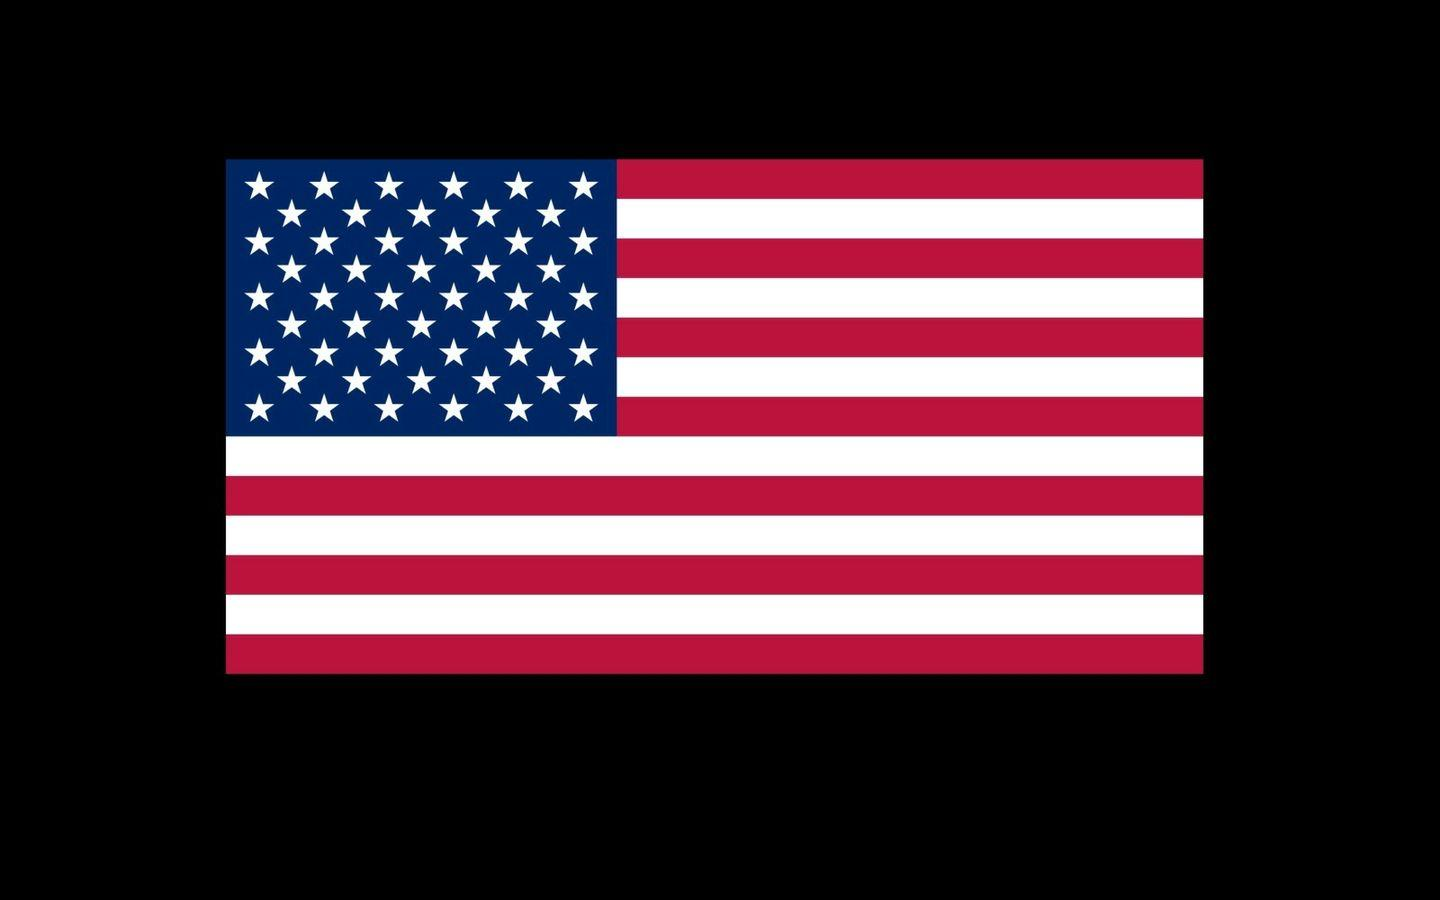 1440x900 United States of America Flag Download Wallpapers 1440x900